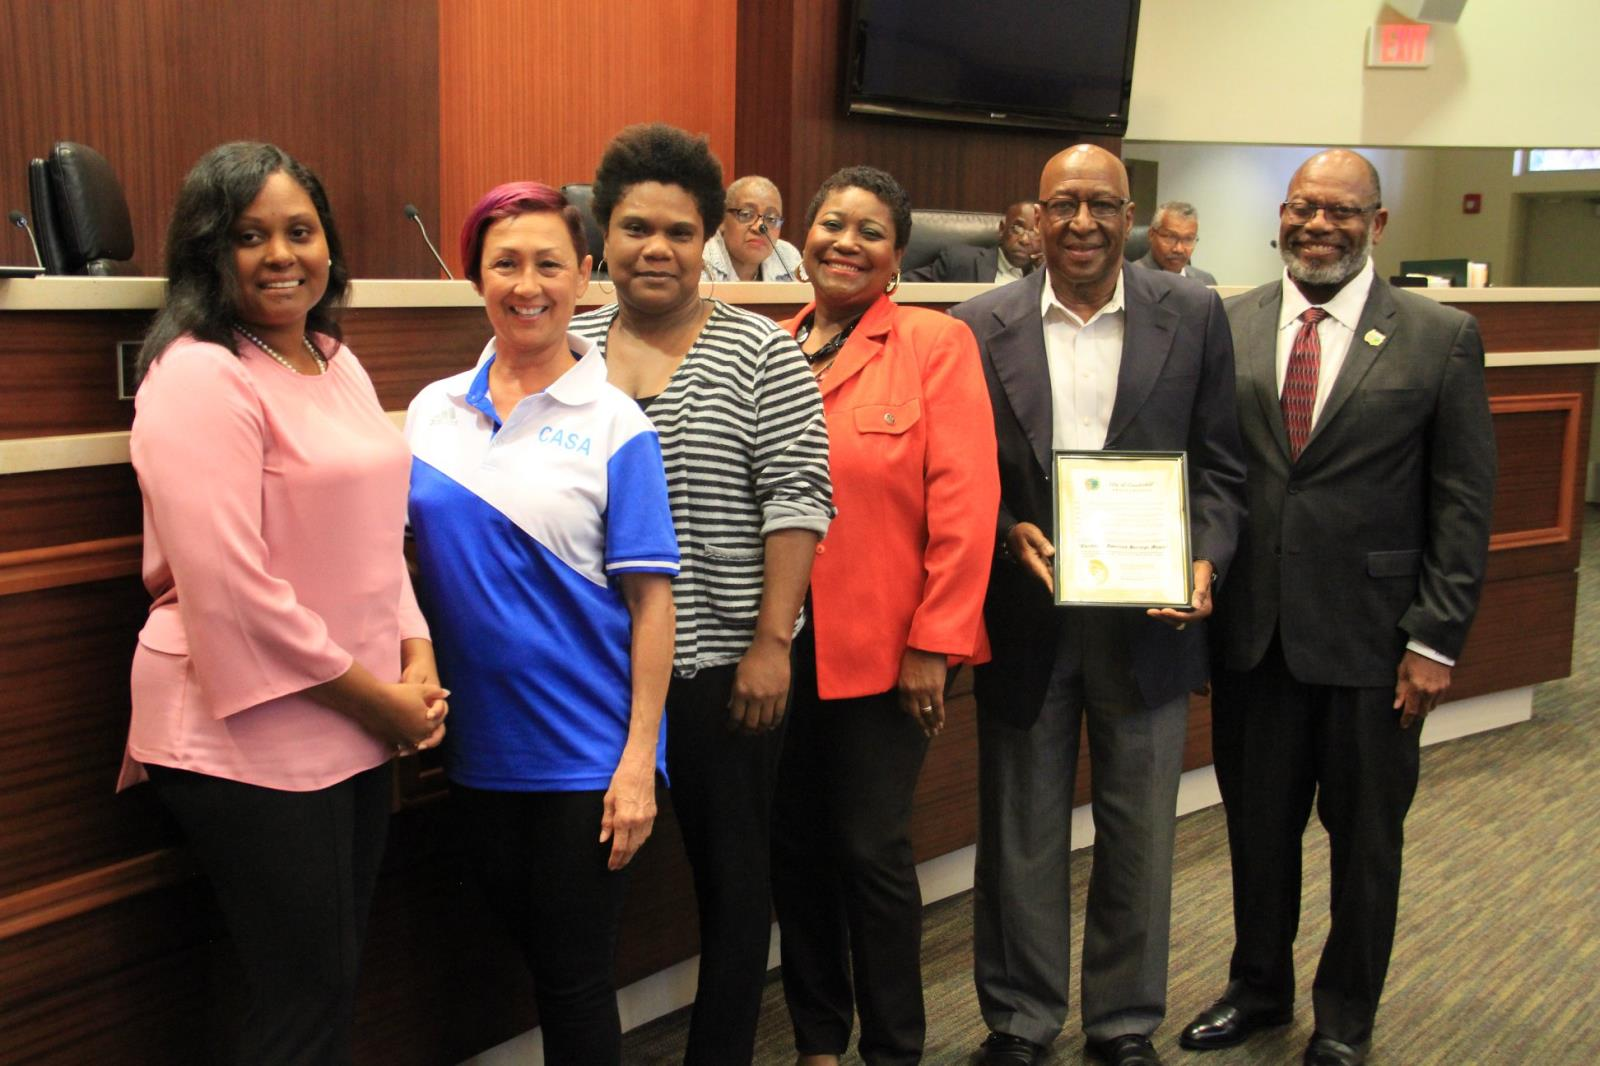 CASA - Caribbean Americas Soccer Association members receiving proclamation